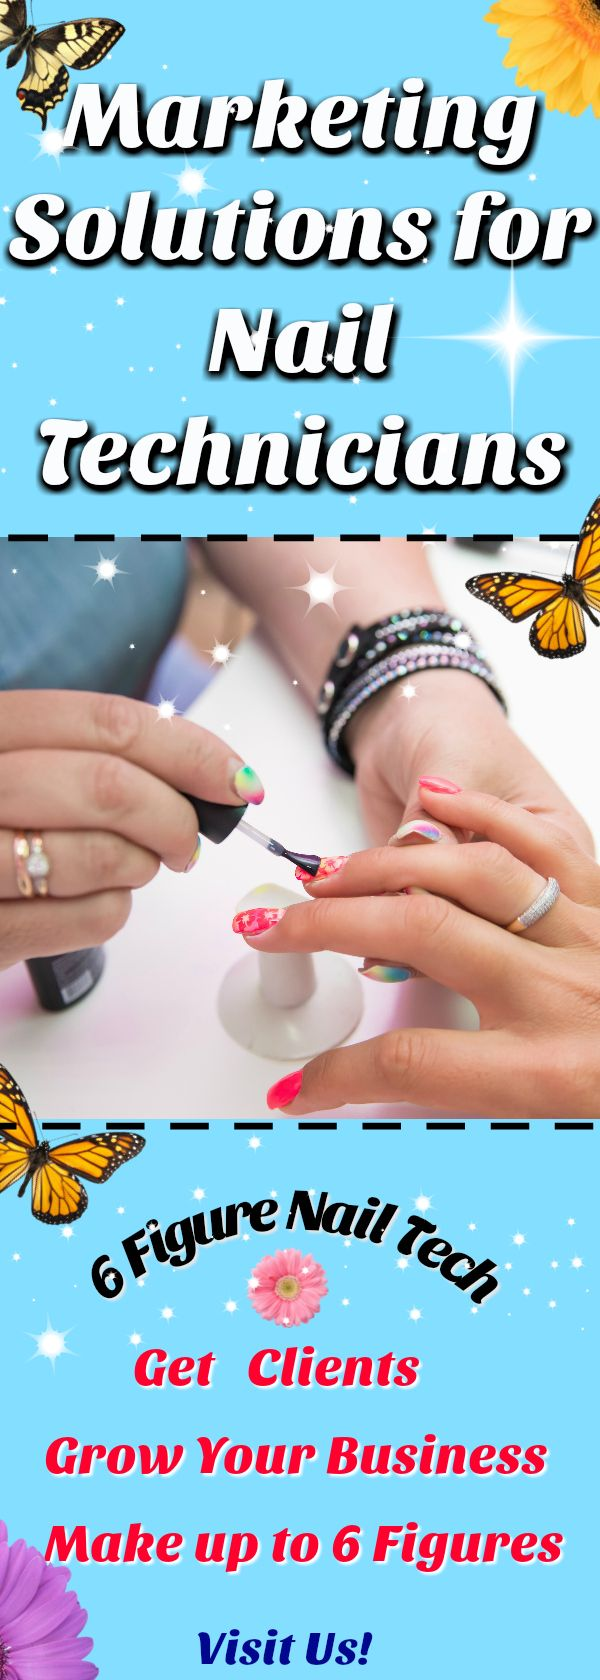 Nail Technician Guide To Making More Money Doing Nails And Nail Art Designs Marketing Tips An Nail Tech Business Cards Mobile Nail Technician Nail Technician